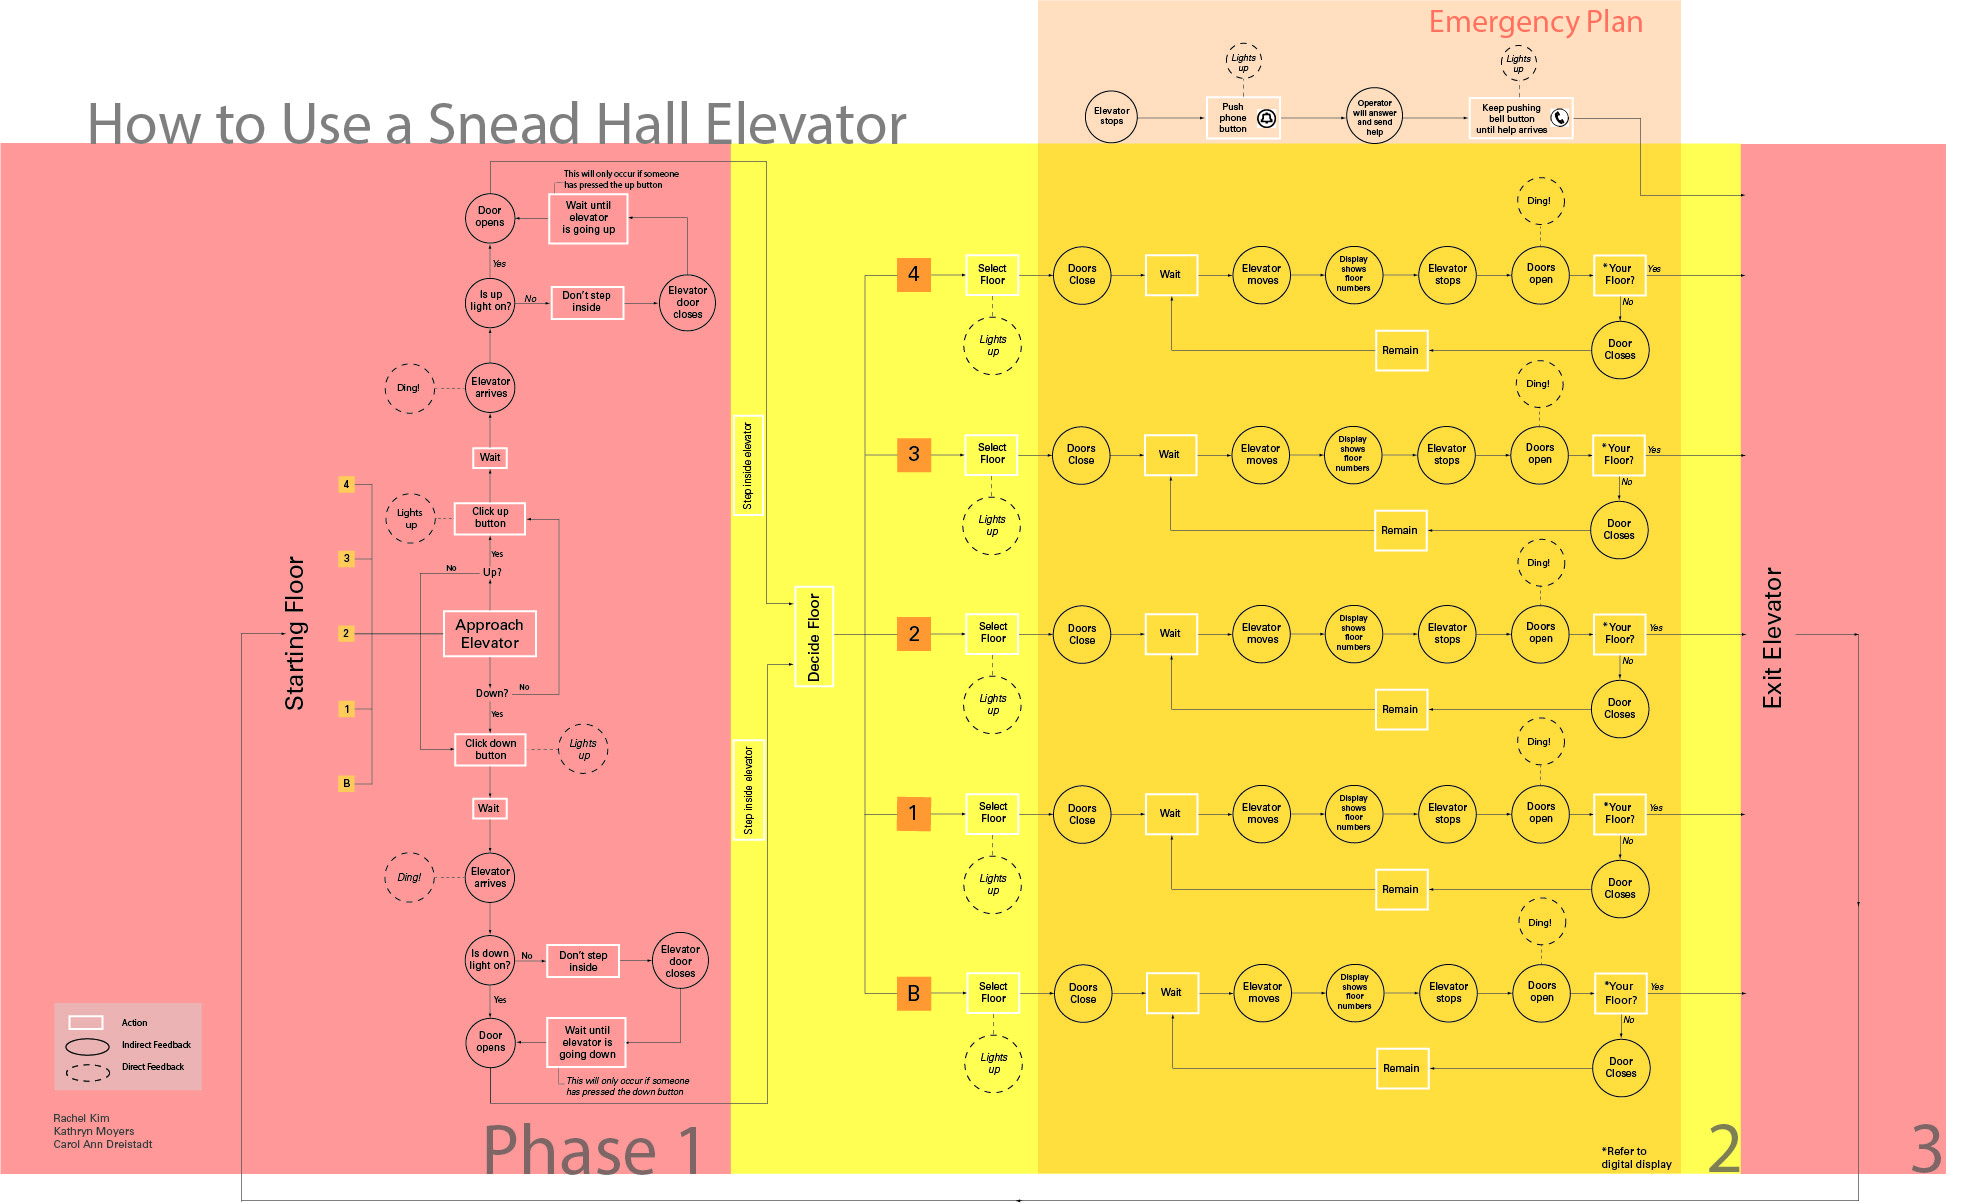 How to use an elevator diagram